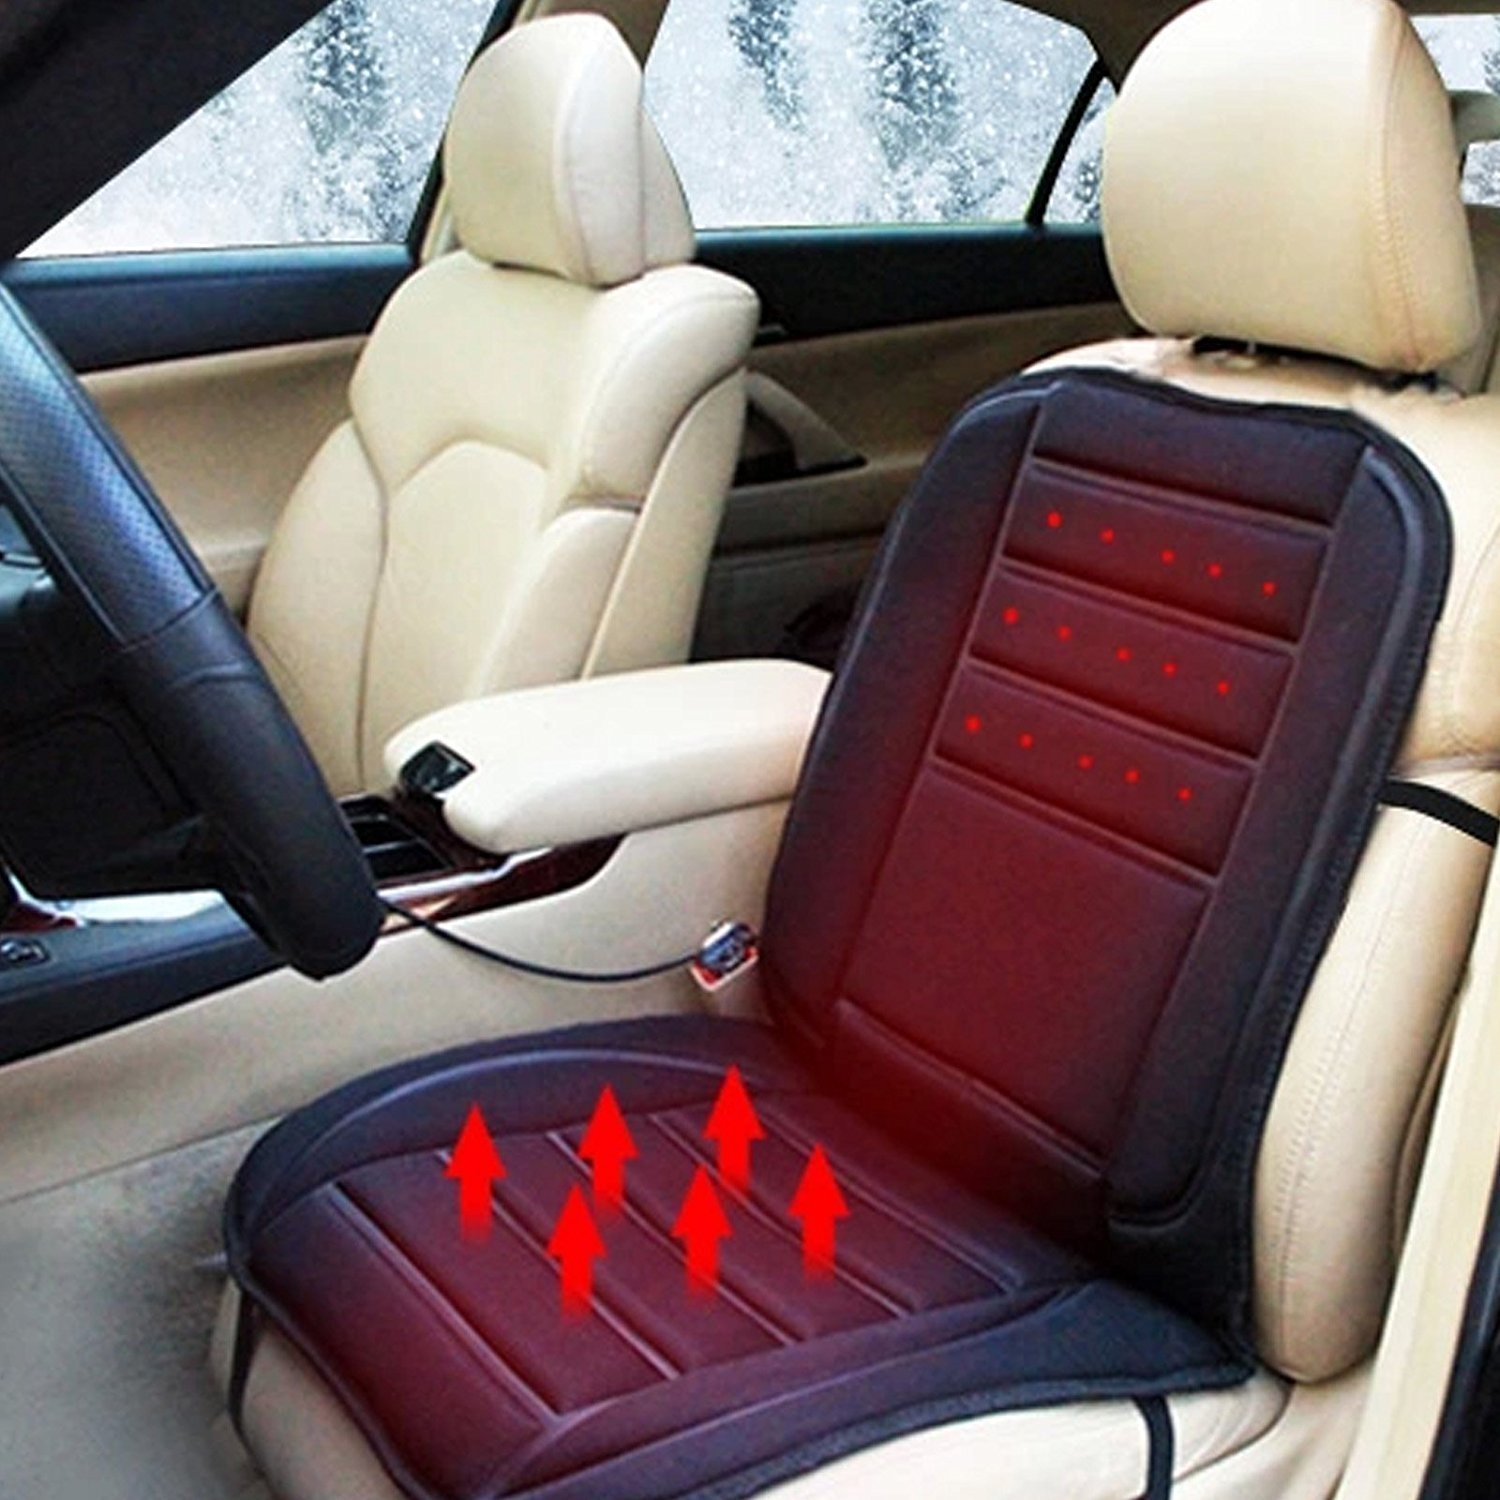 XtremeAuto® Thermo Heated Seat Cushion Cover Pad Selection Front And Rear (Heated Massage Seat Cover) XtremeAuto®